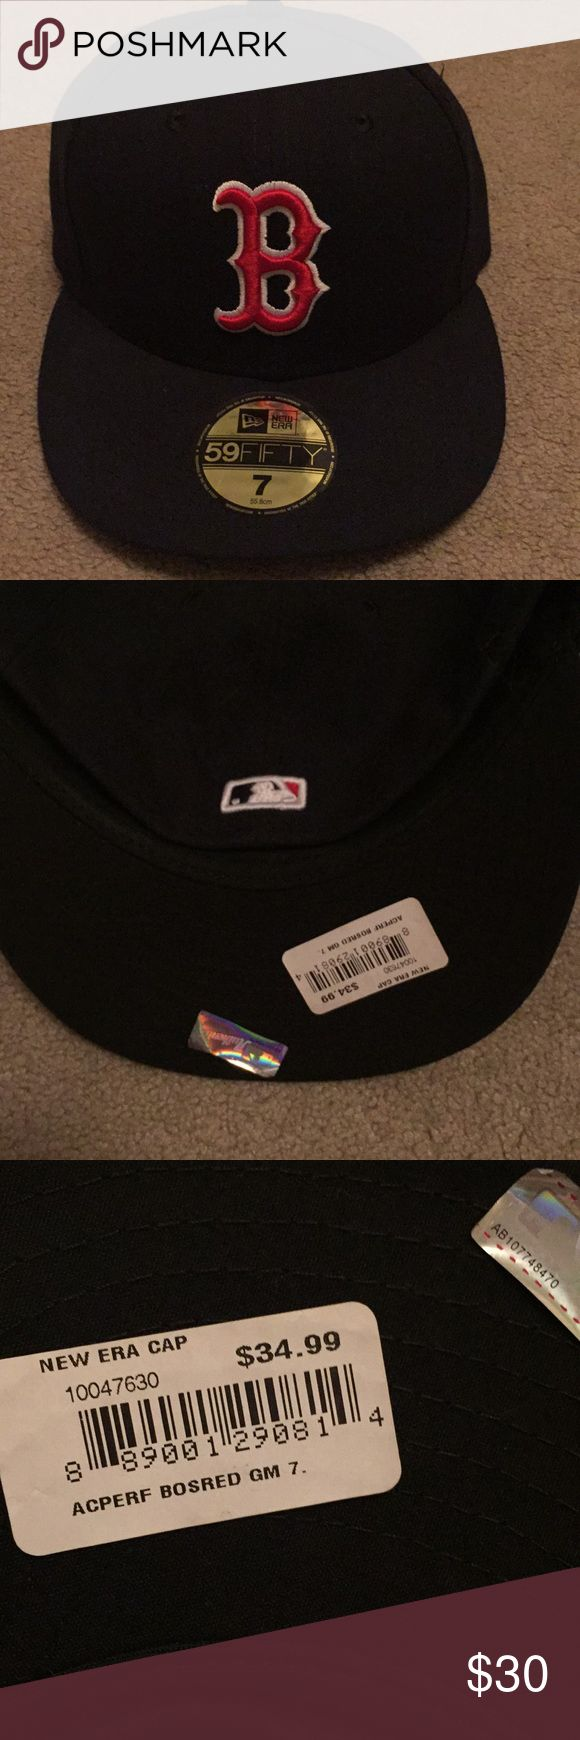 Boston Red Sox Baseball Cap Size 7 Boston Red Sox fitted baseball cap in excellent unused condition New Era Accessories Hats